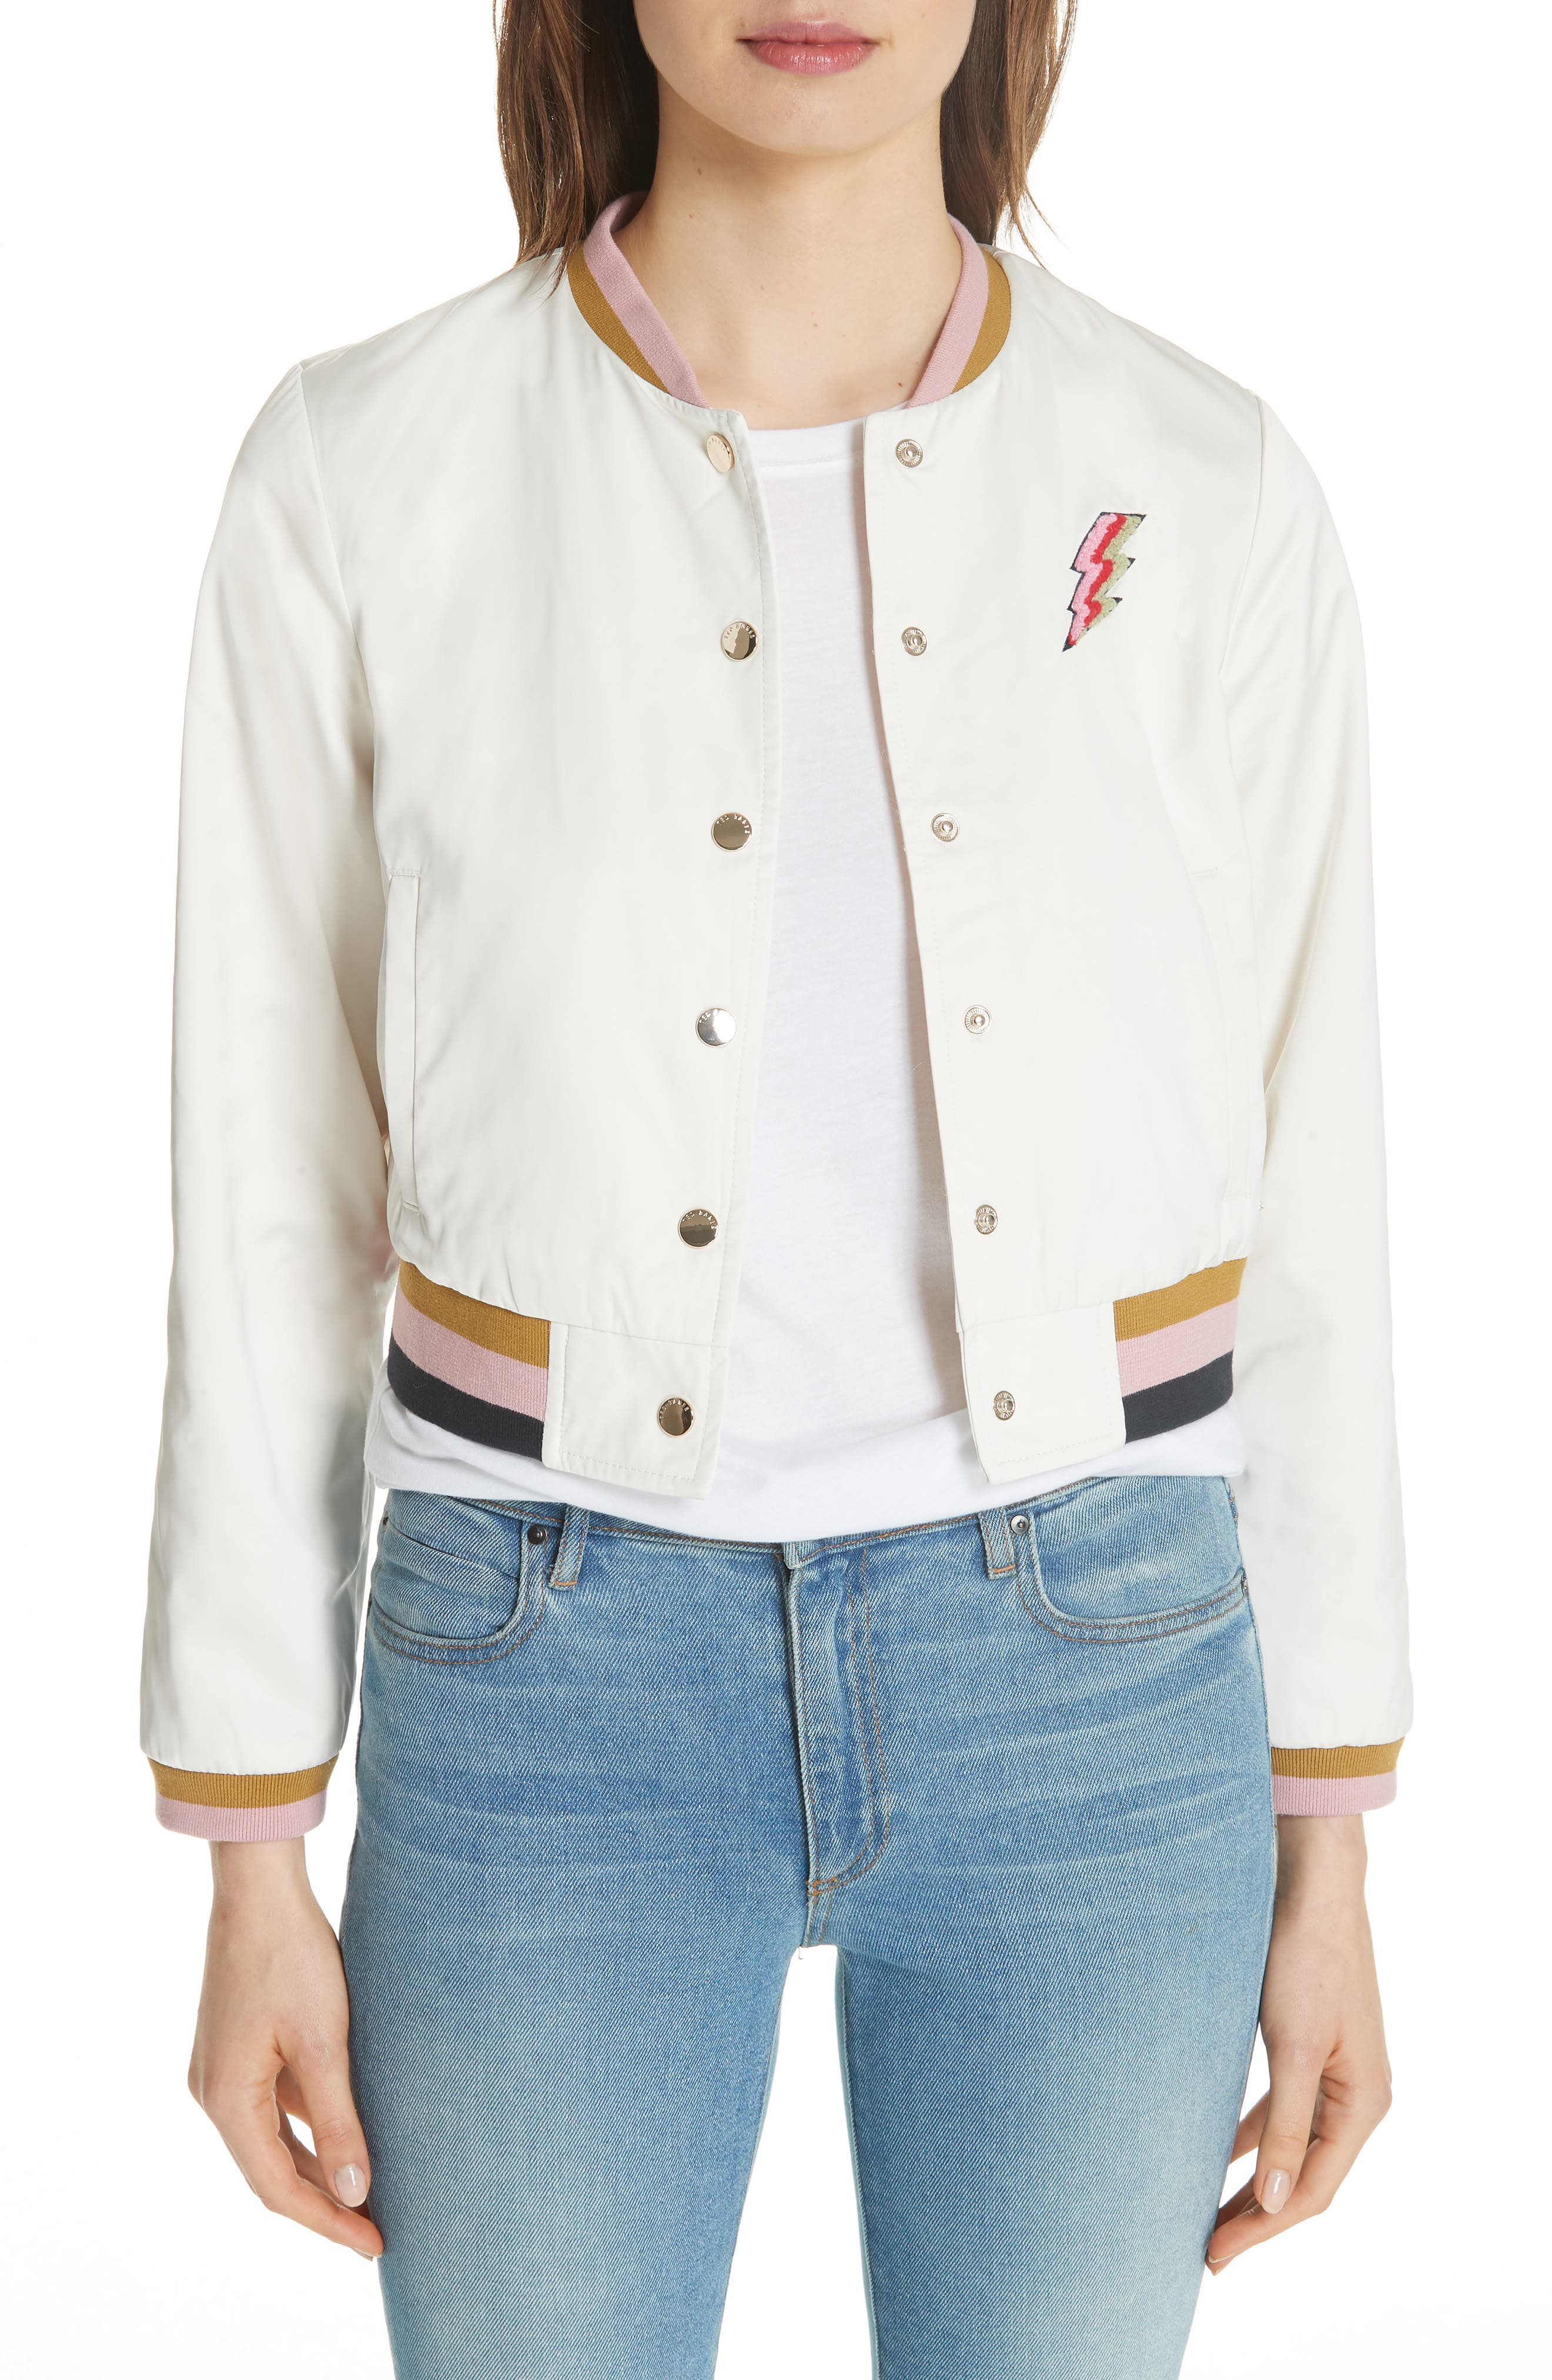 Colour by Numbers Bomber Jacket,                             Main thumbnail 2, color,